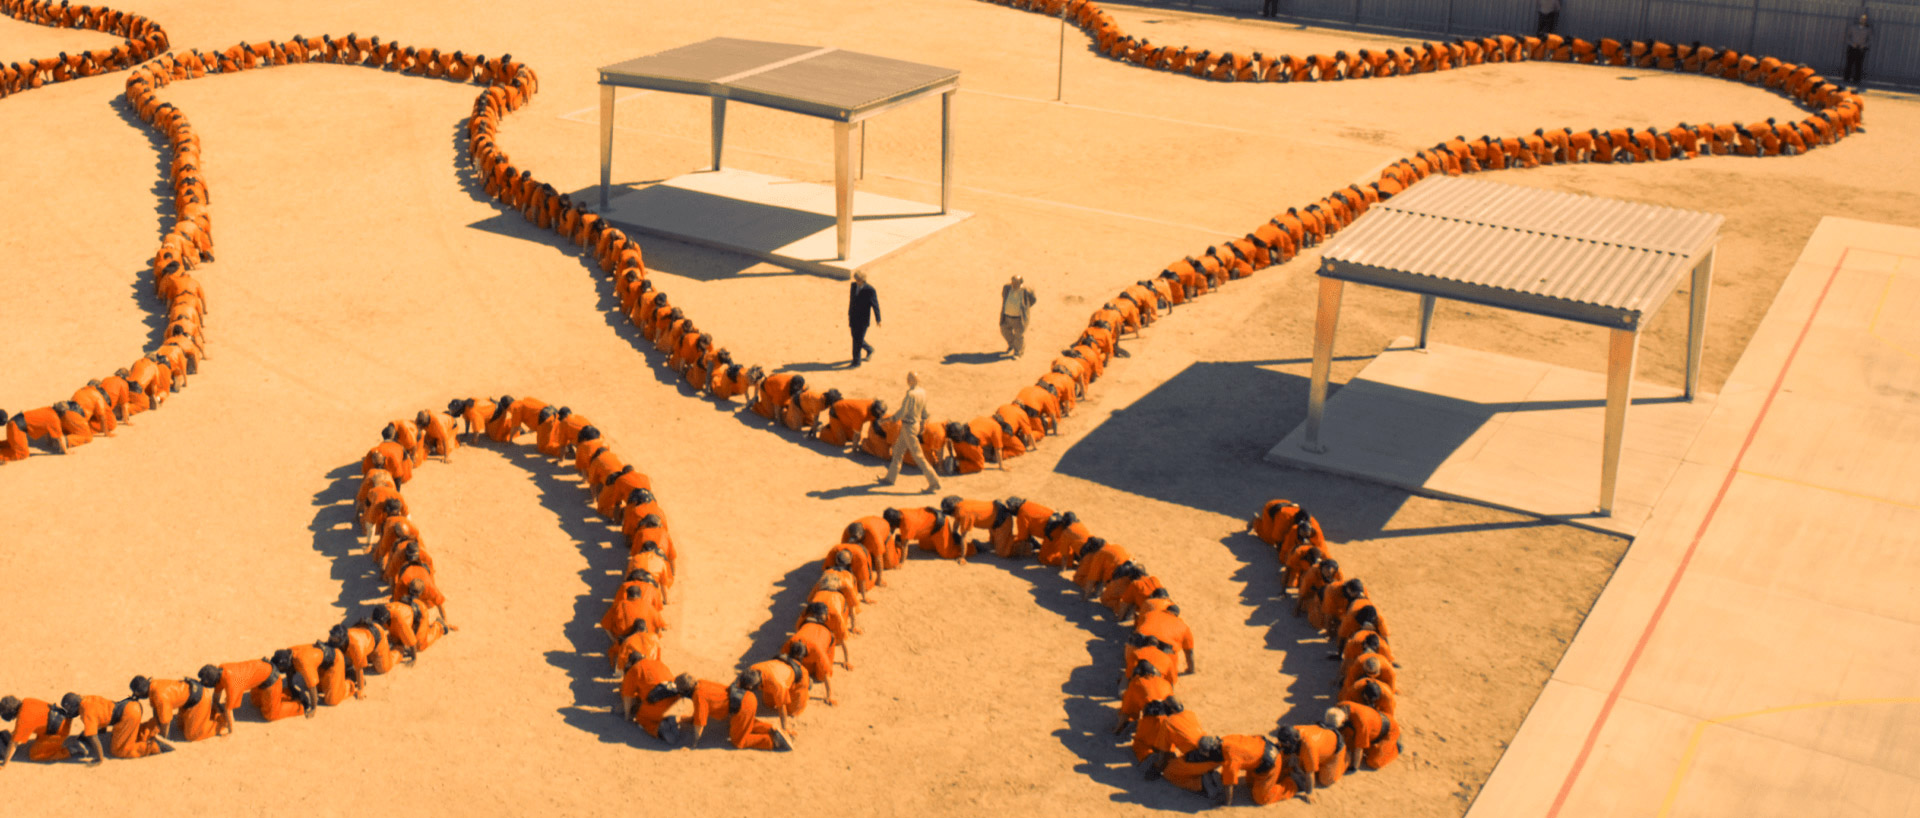 The Human Centipede 3